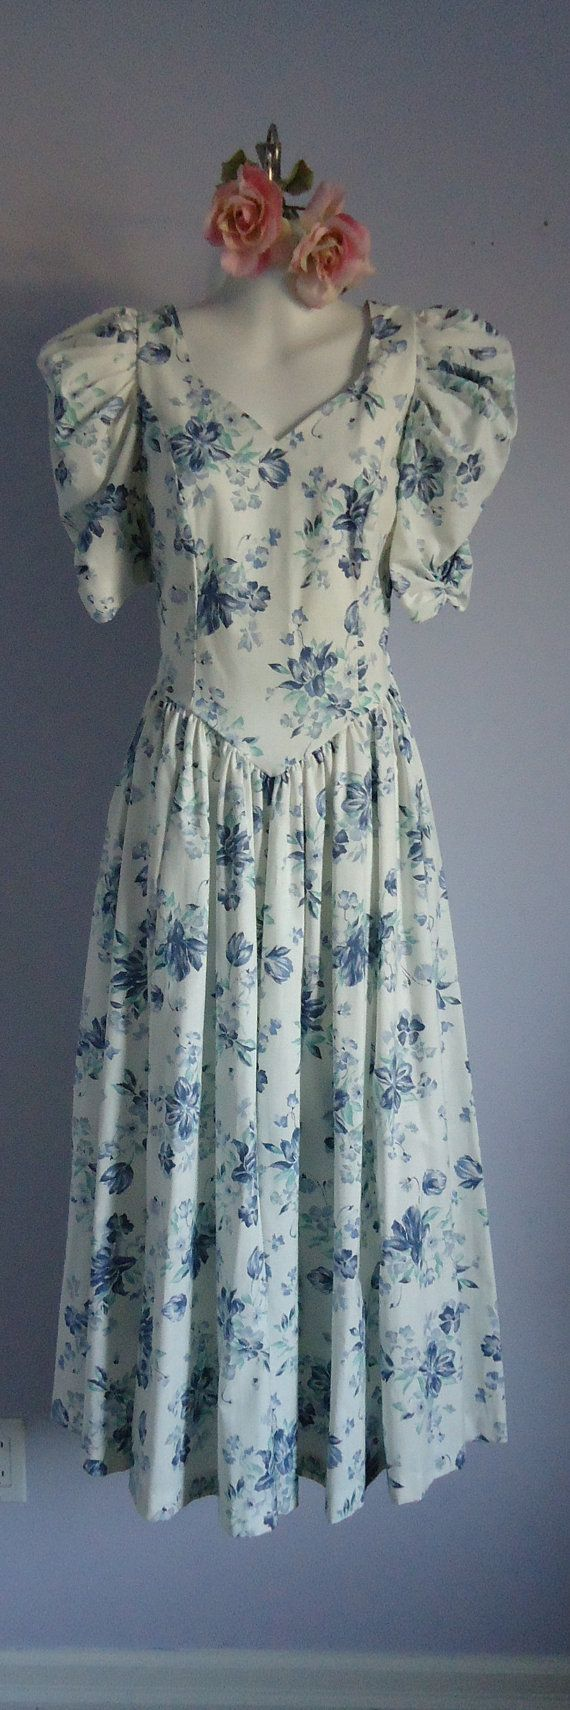 laura ashley vintage laura ashley wedding dresses Vintage Laura Ashley dress ready for tea Al matrimonio di sua